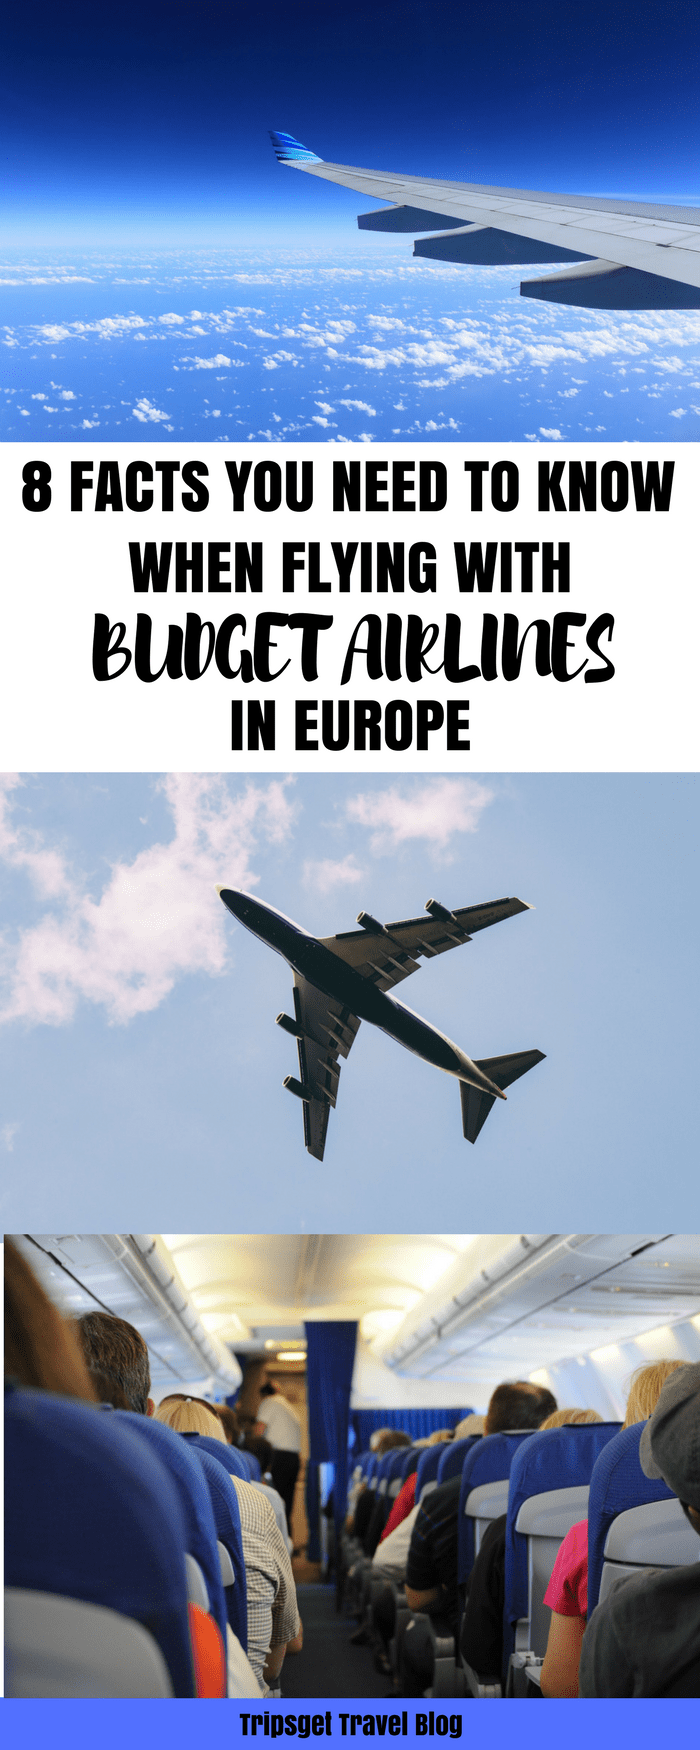 8 facts to know when flying with budget airlines in Europe. Low cost airlines reviews